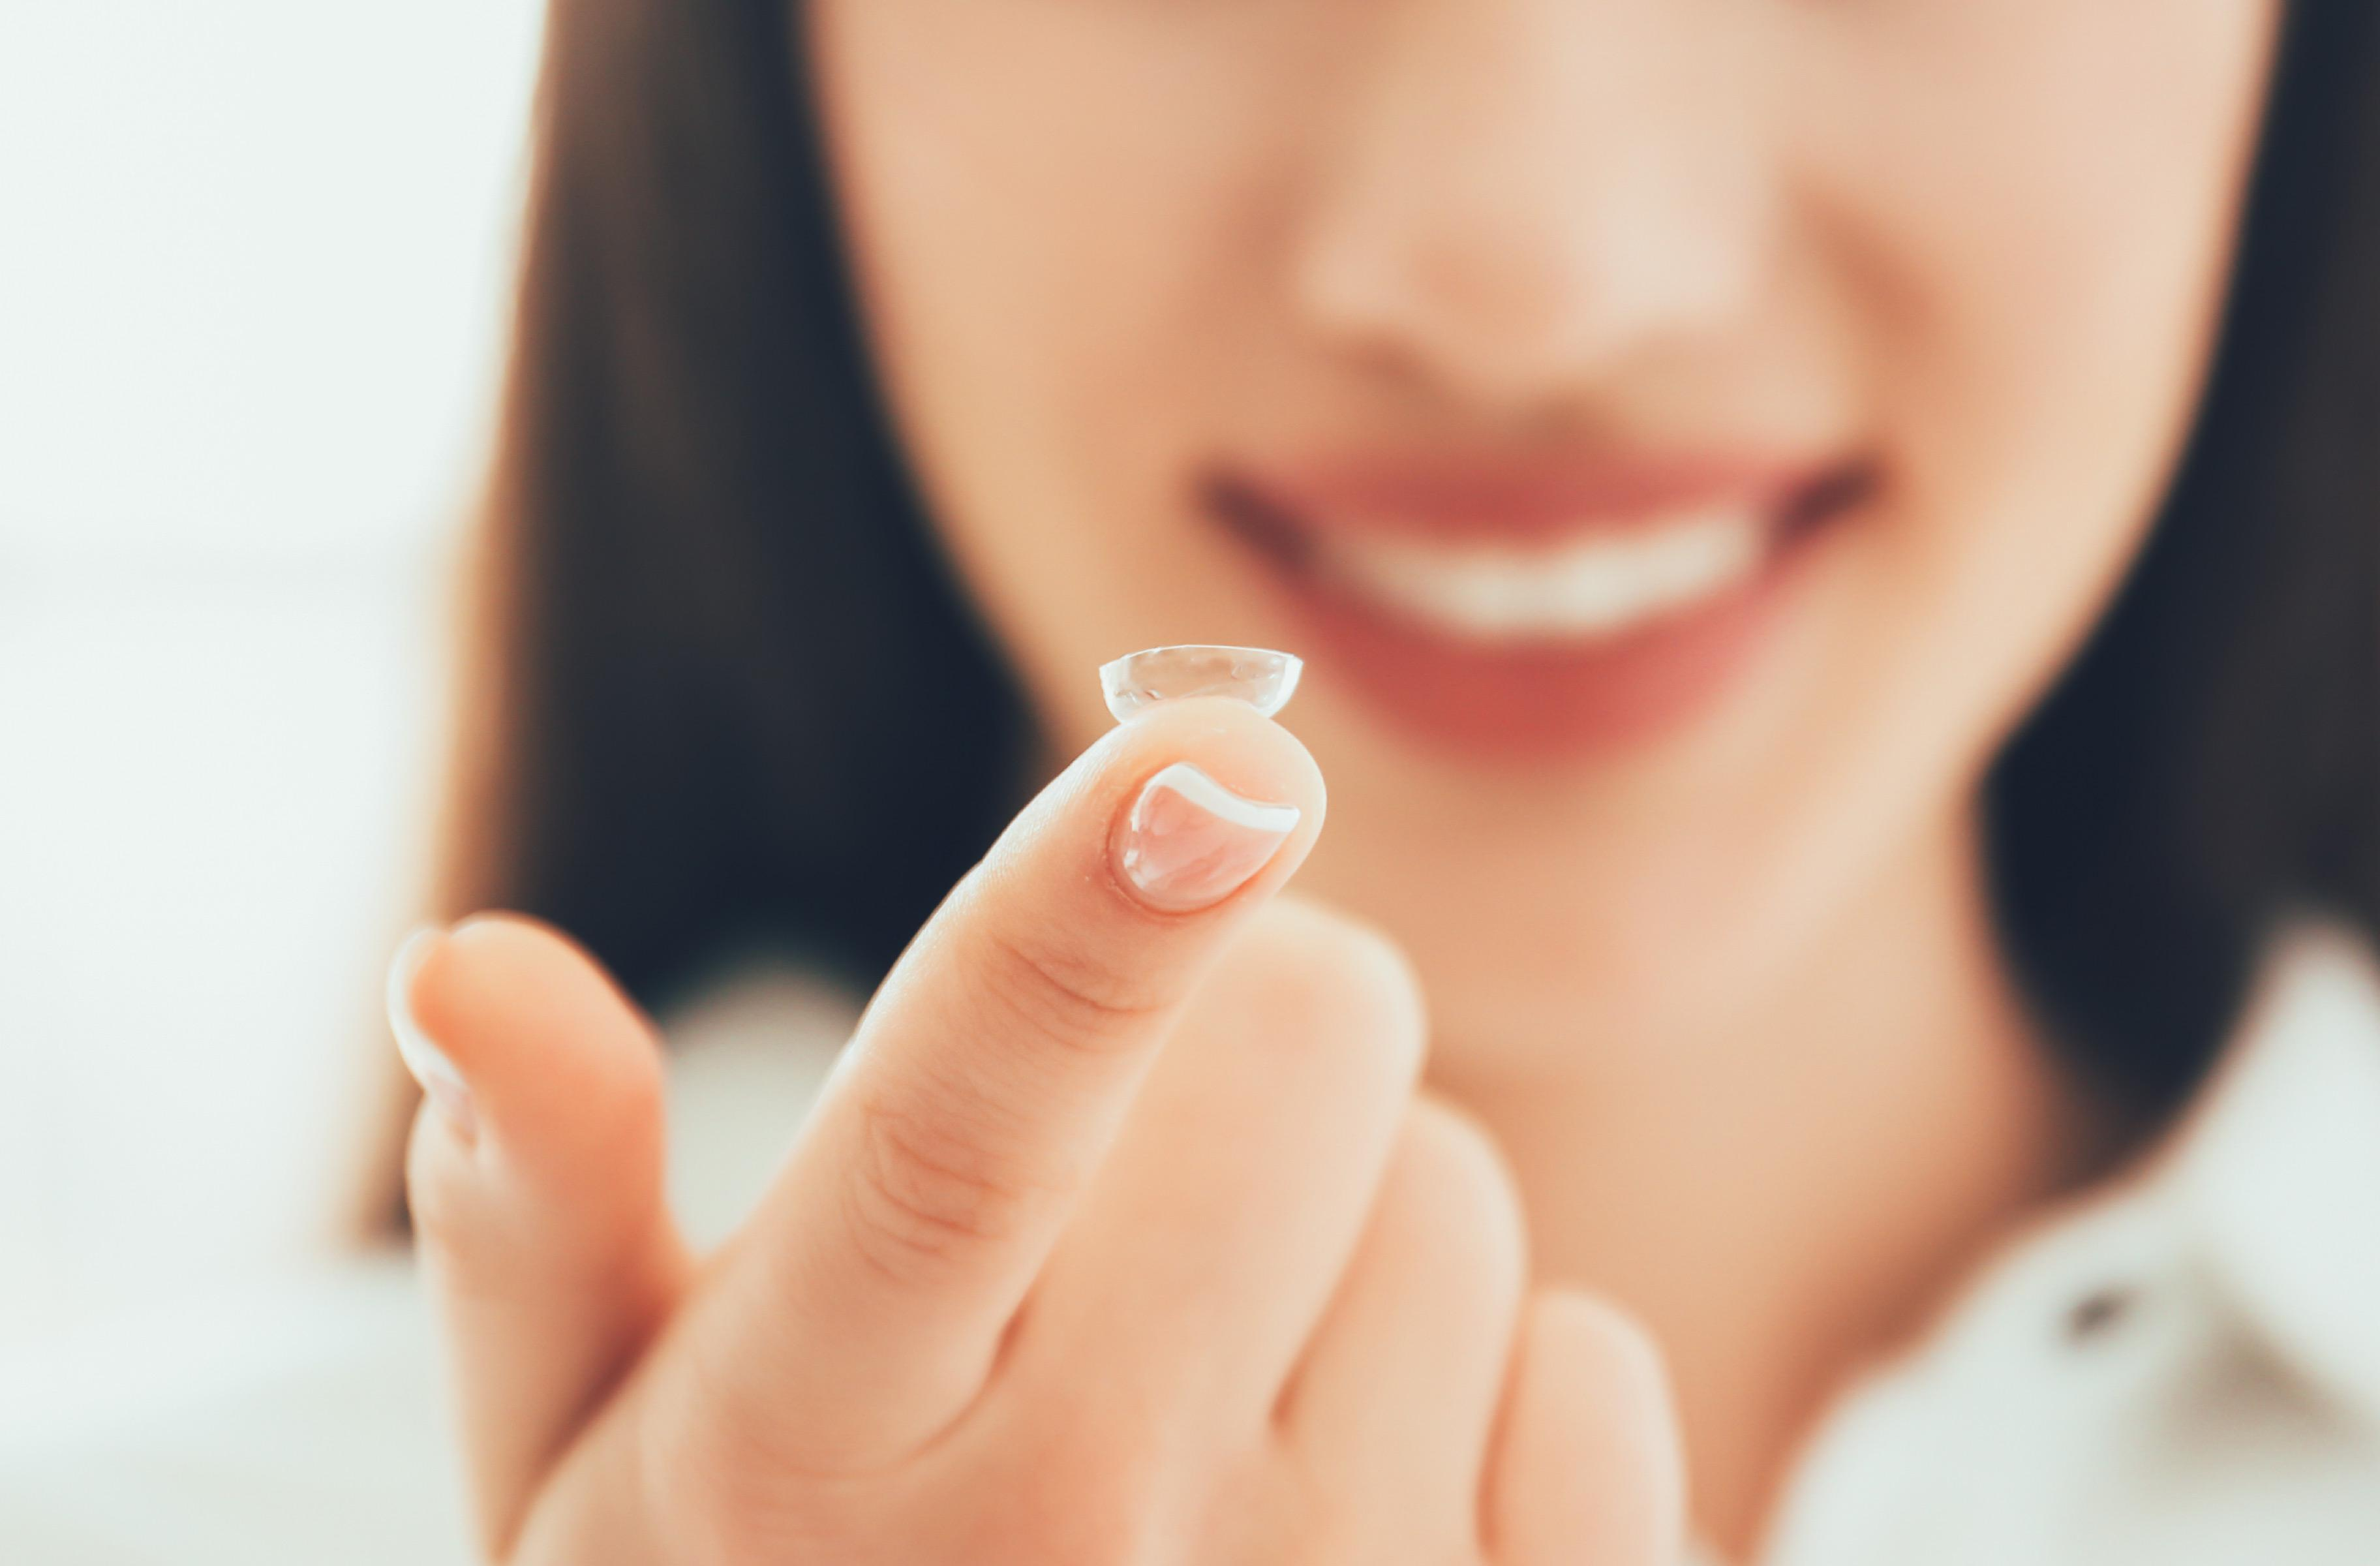 Woman with contact lenses on her finger